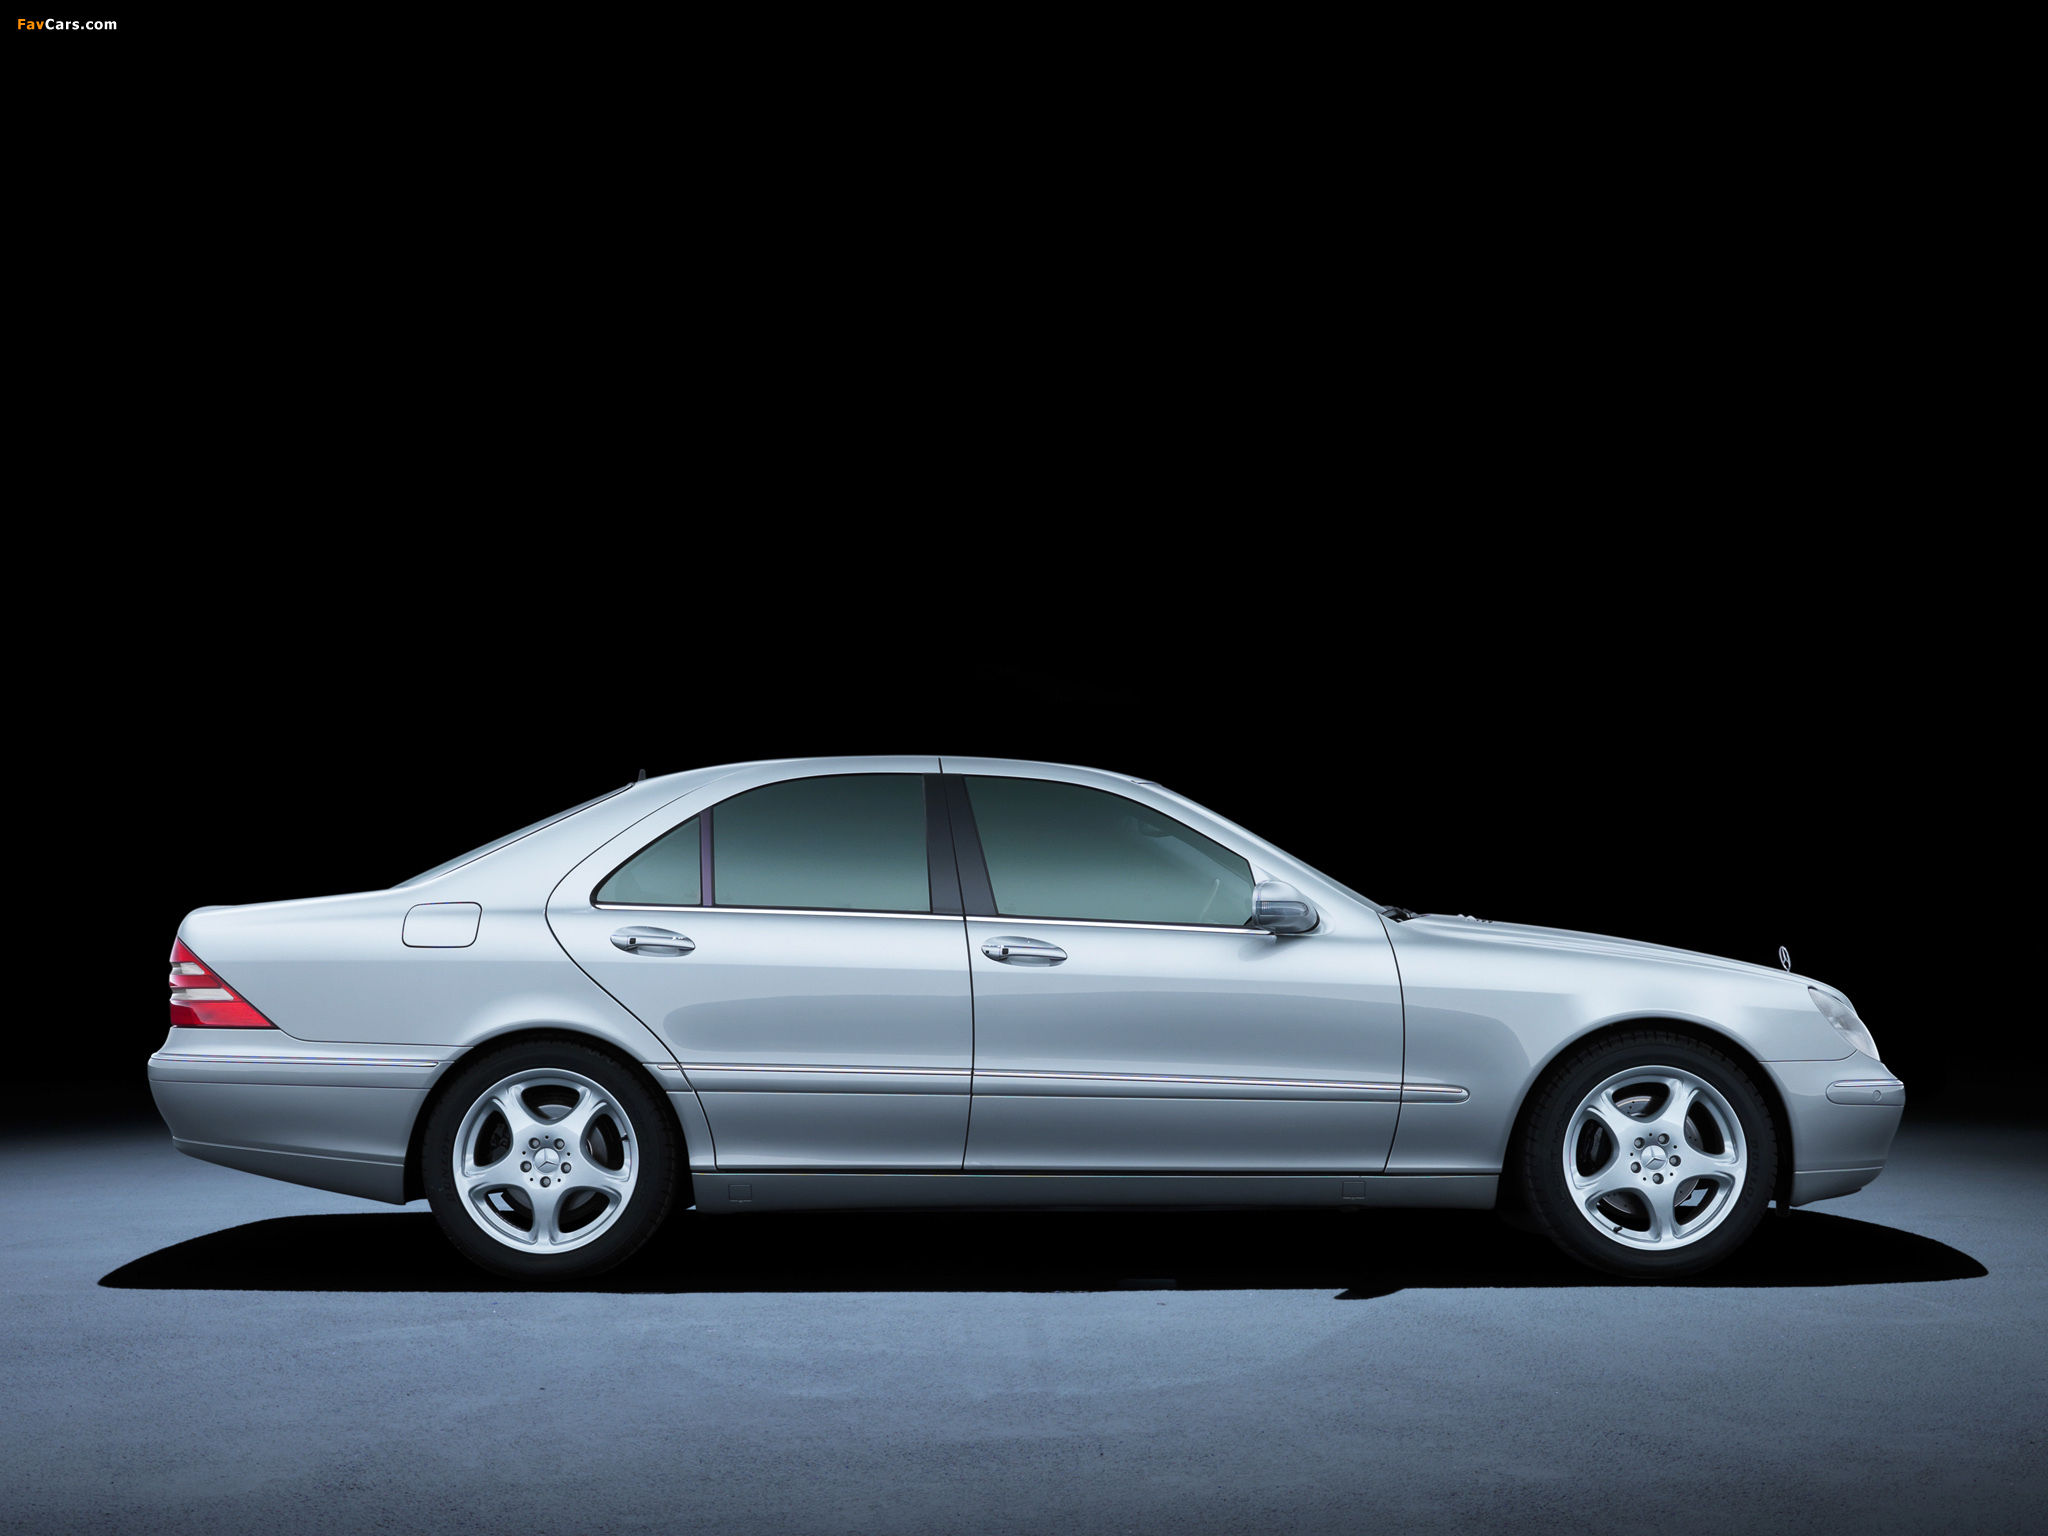 Mercedes-Benz S 400 CDI (W220) 1999–2002 pictures (2048 x 1536)